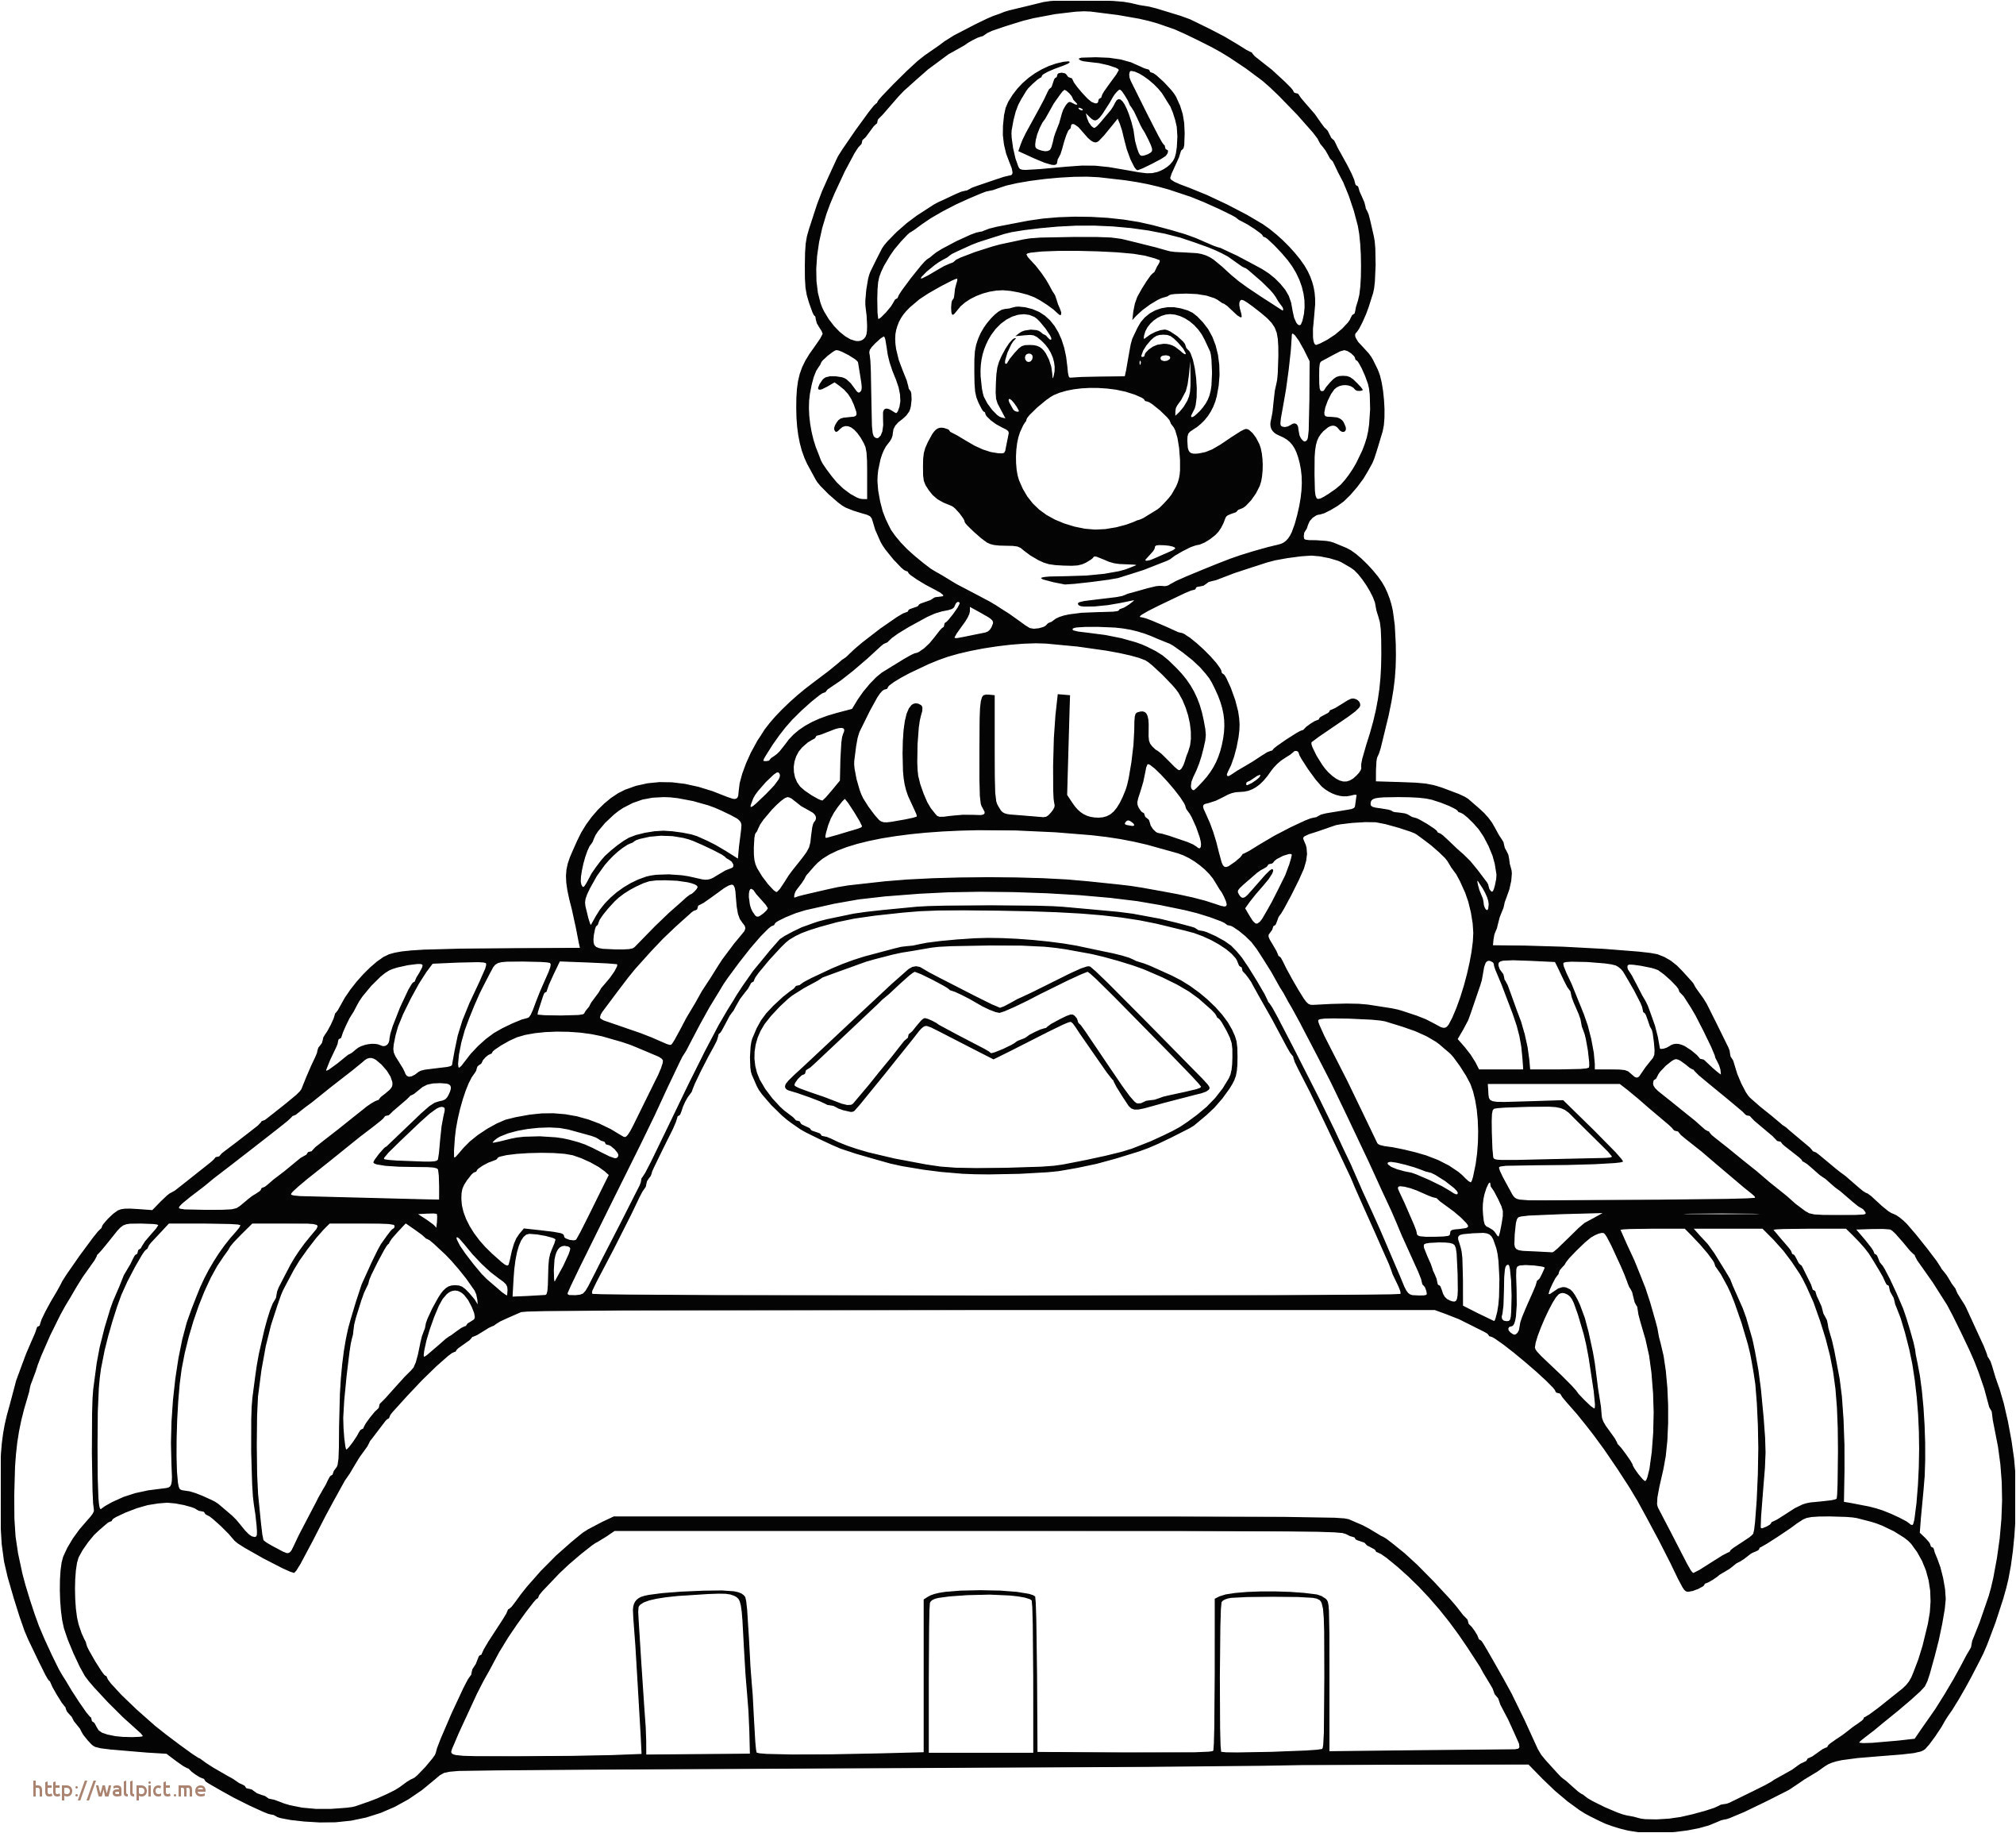 Hugo L Escargot Coloriage Mario Luxury Coloriage Oiseaux dedans Coloriage À Imprimer Hugo L Escargot